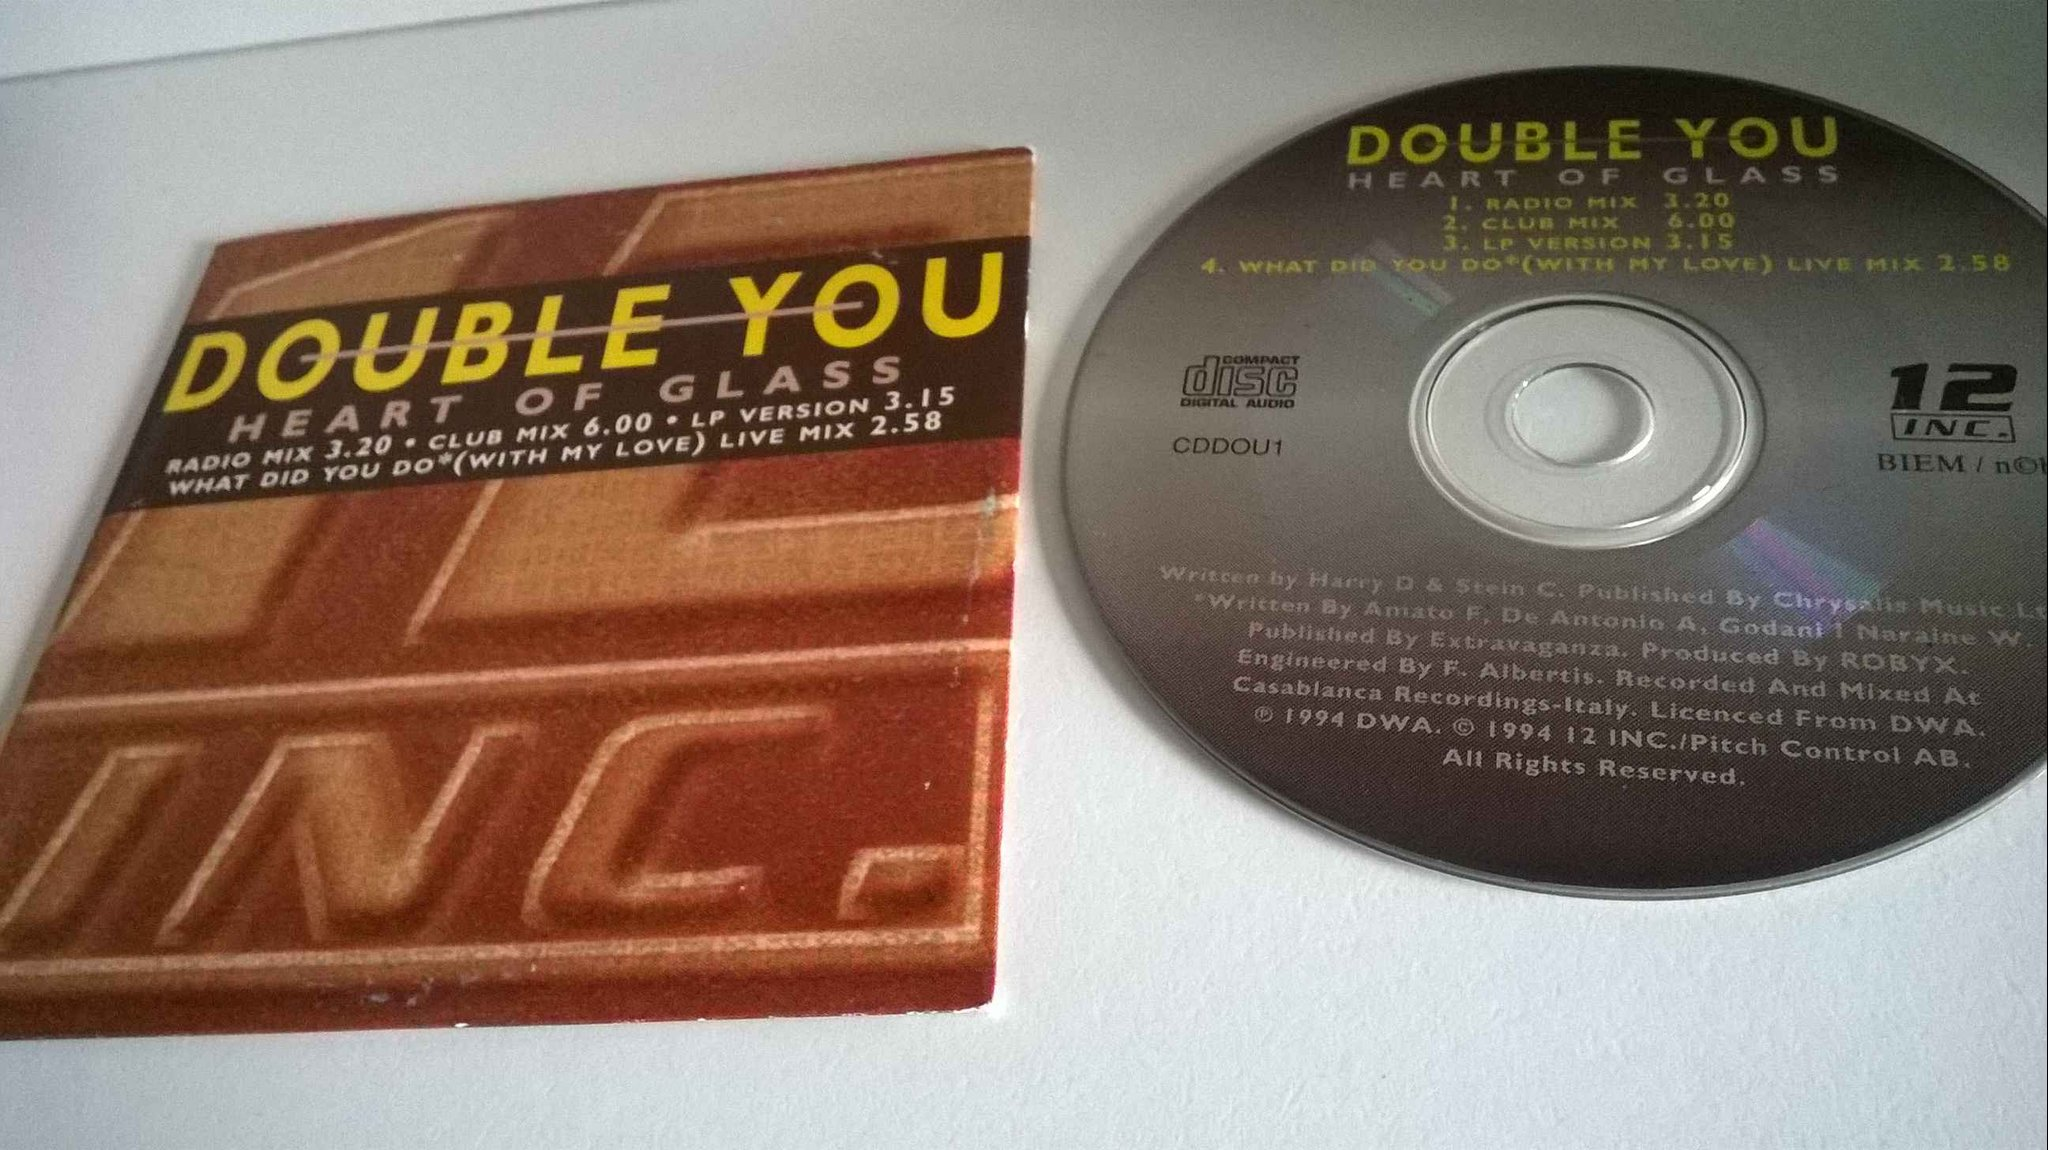 Double you - Heart of Glass, single CD